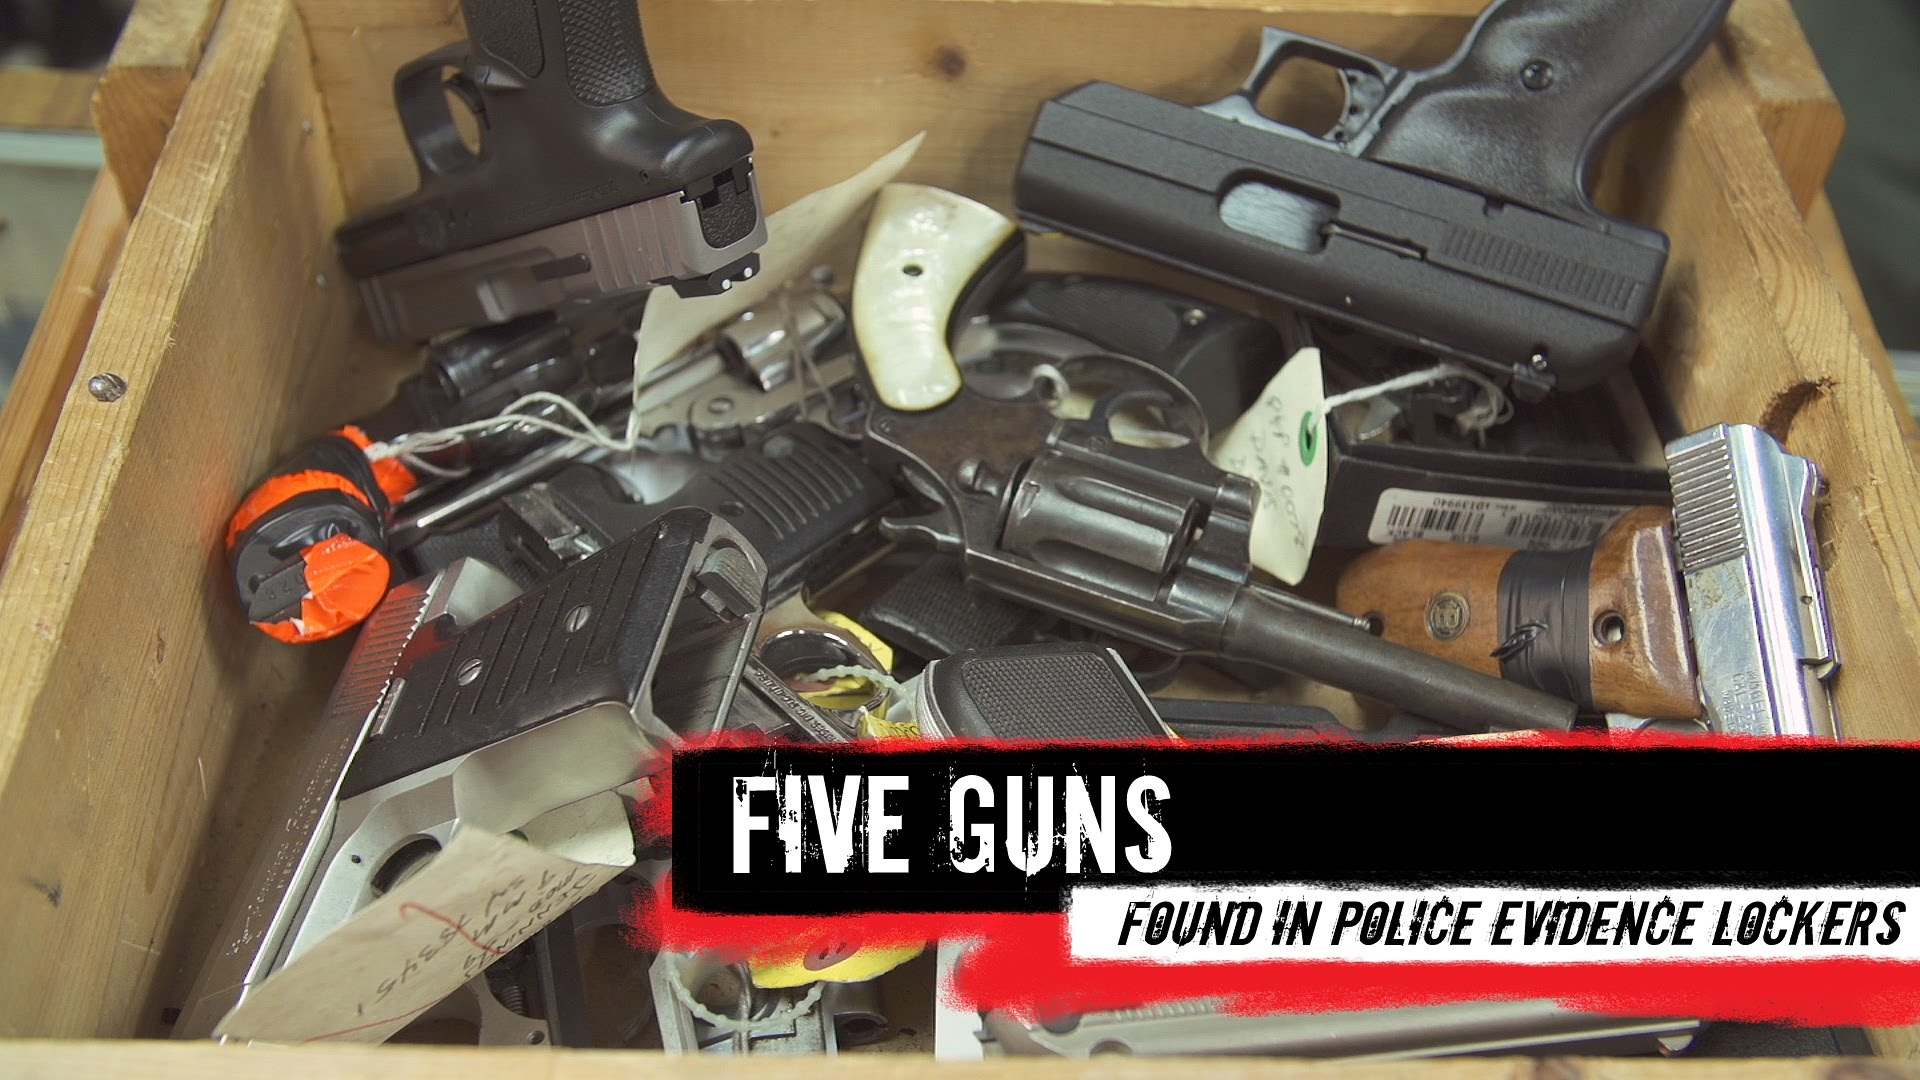 Top Five Guns Found in Police Evidence Lockers